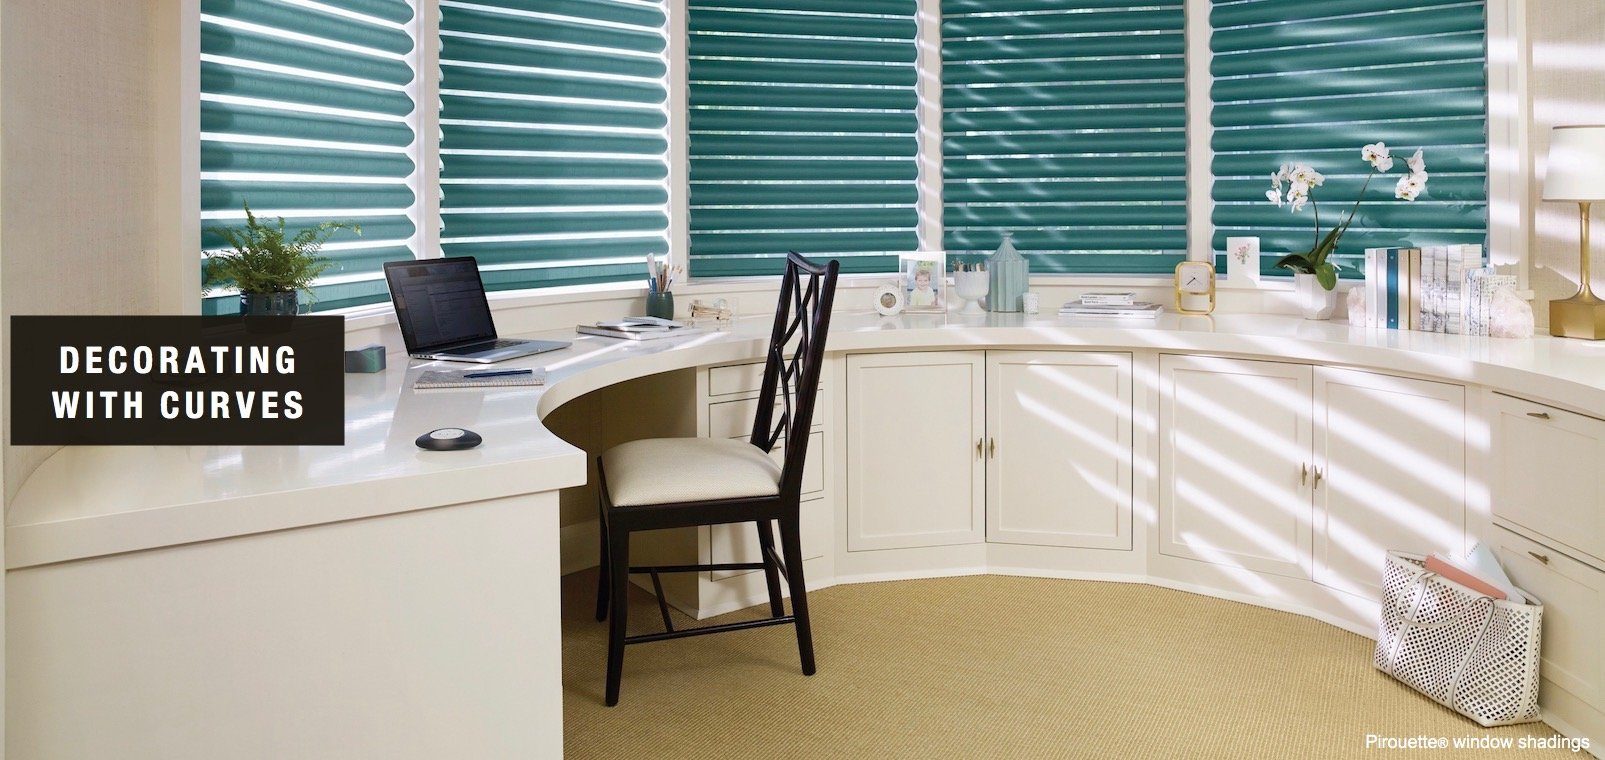 Compatible Window Treatment Ideas With Curves